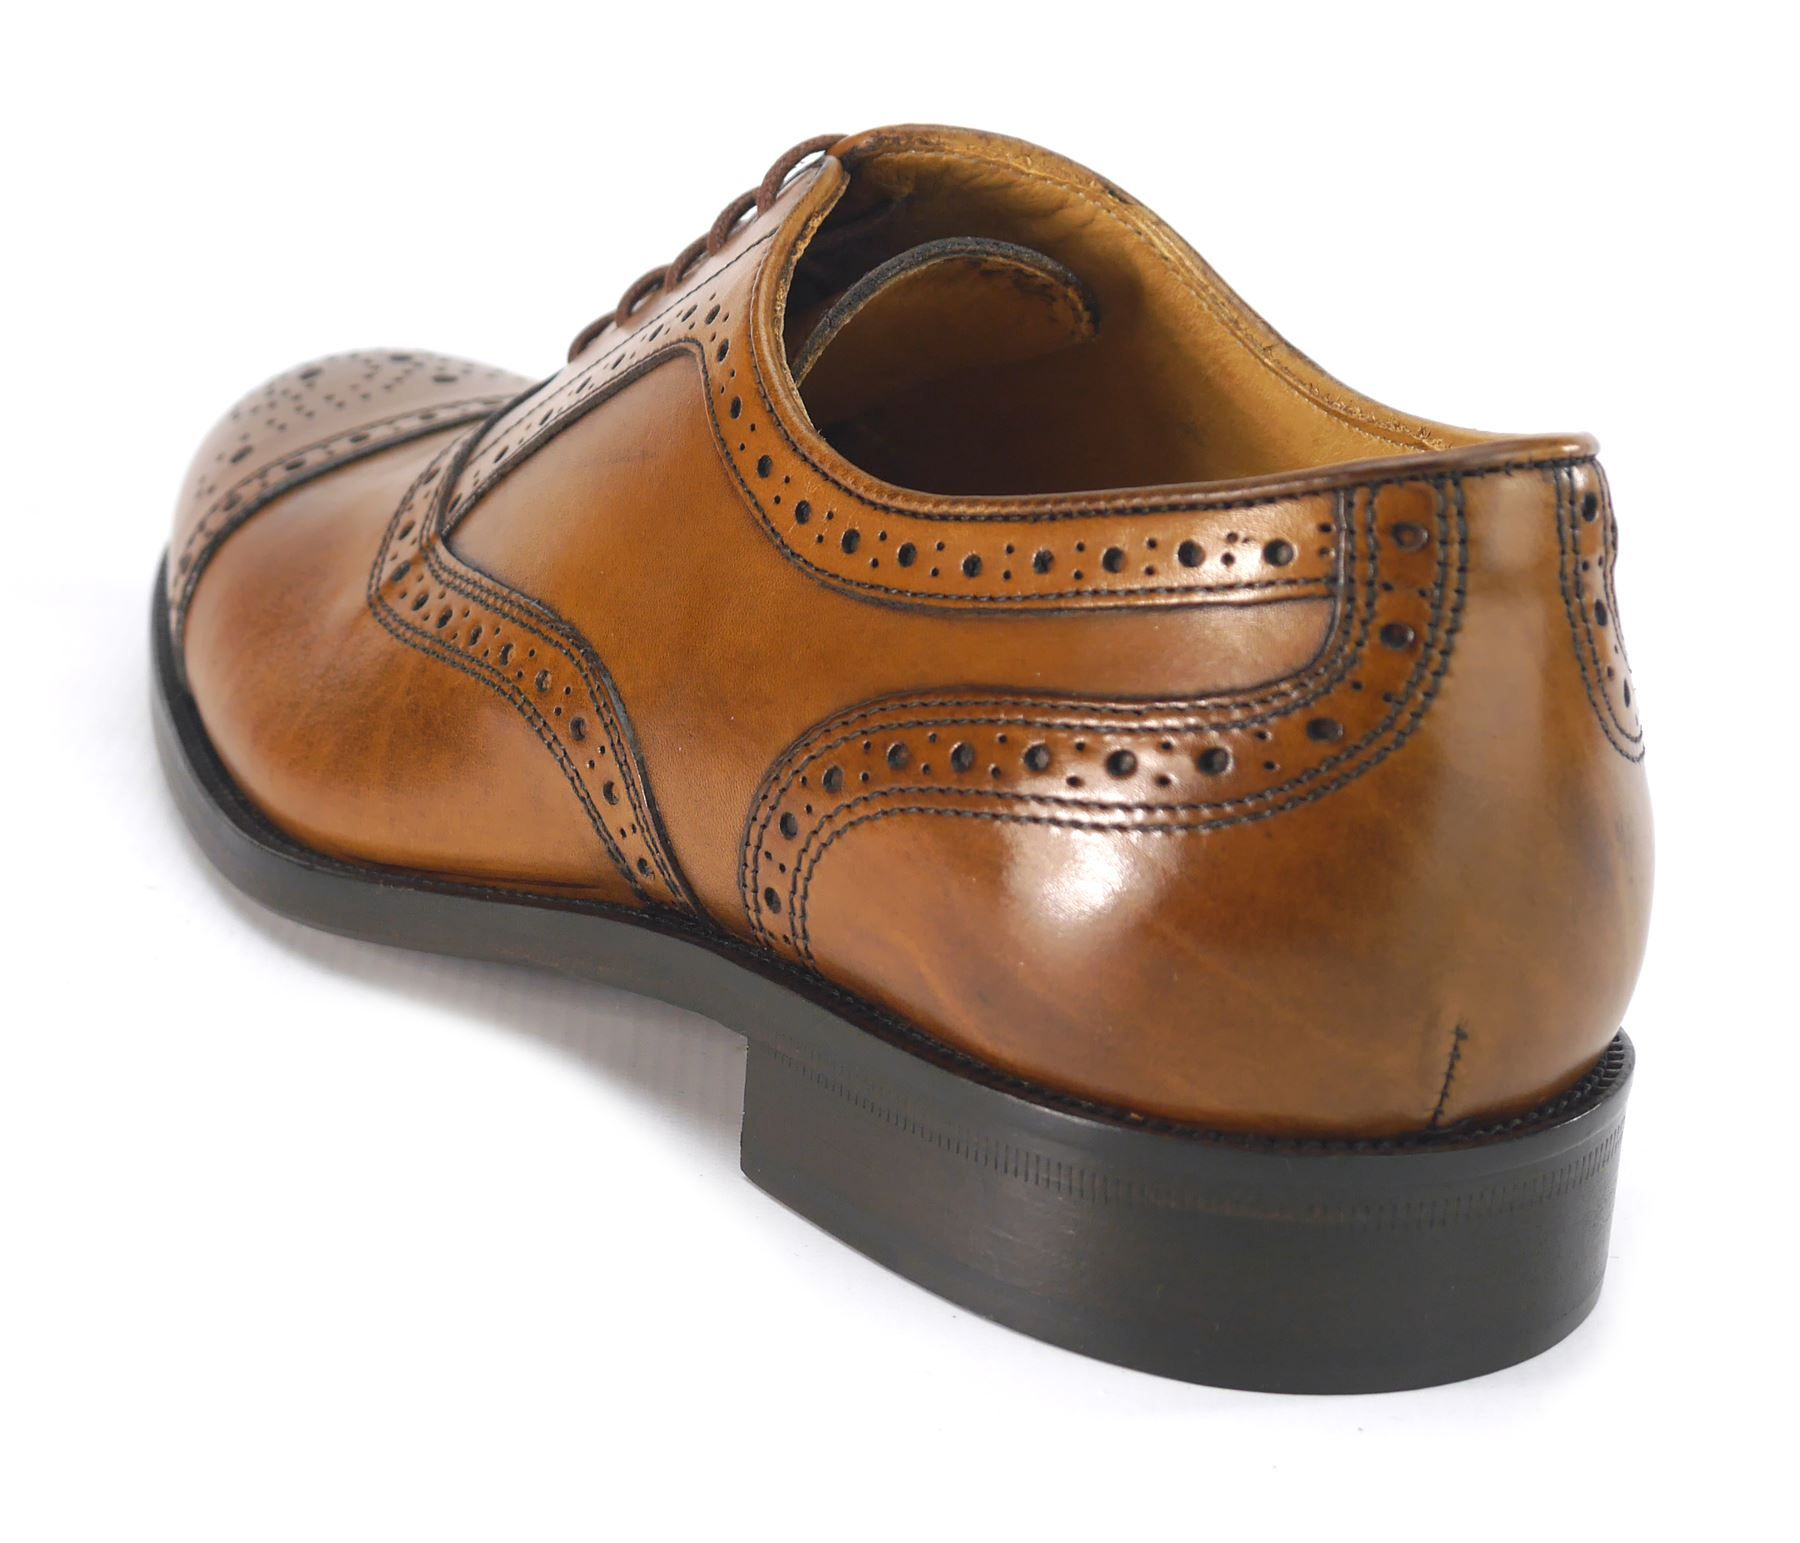 Mercanti Fiorentini Mens Lace Up All Leather Brogue Oxford Tan or Black  Shoes 6cdcc1e52ff